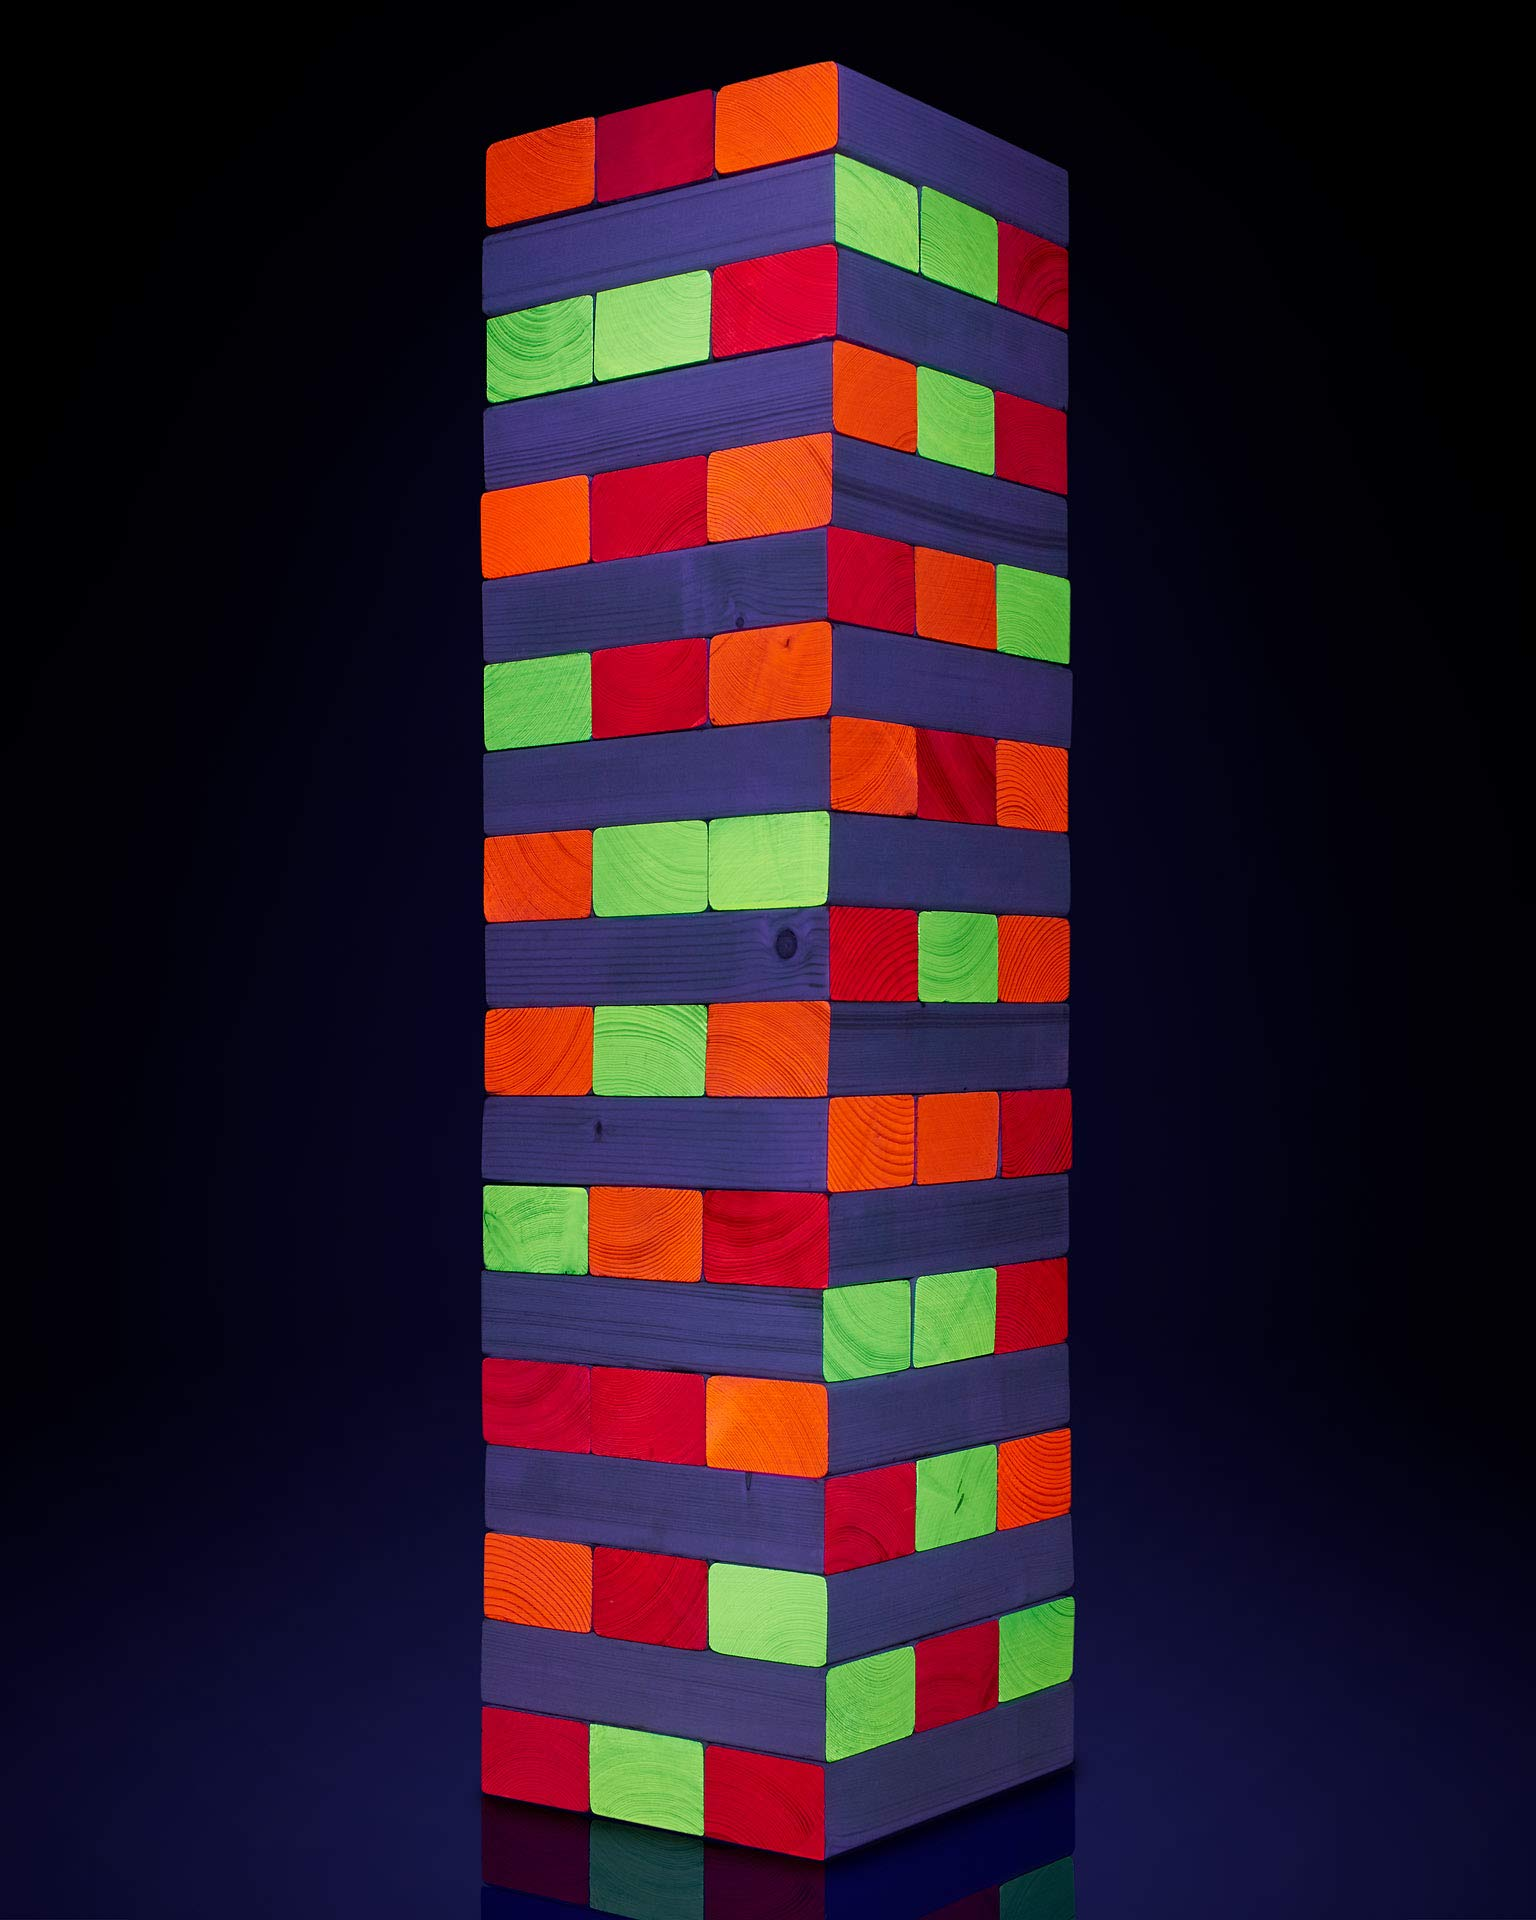 Limelight Games Ultimate Black Light Giant Tumbling Tower - Entertain Your Large Group Day Or Night - Glowing Blocks - Premium Carrying Case - Precision Milled Wooden Stacking Block Set by Limelite Games (Image #2)